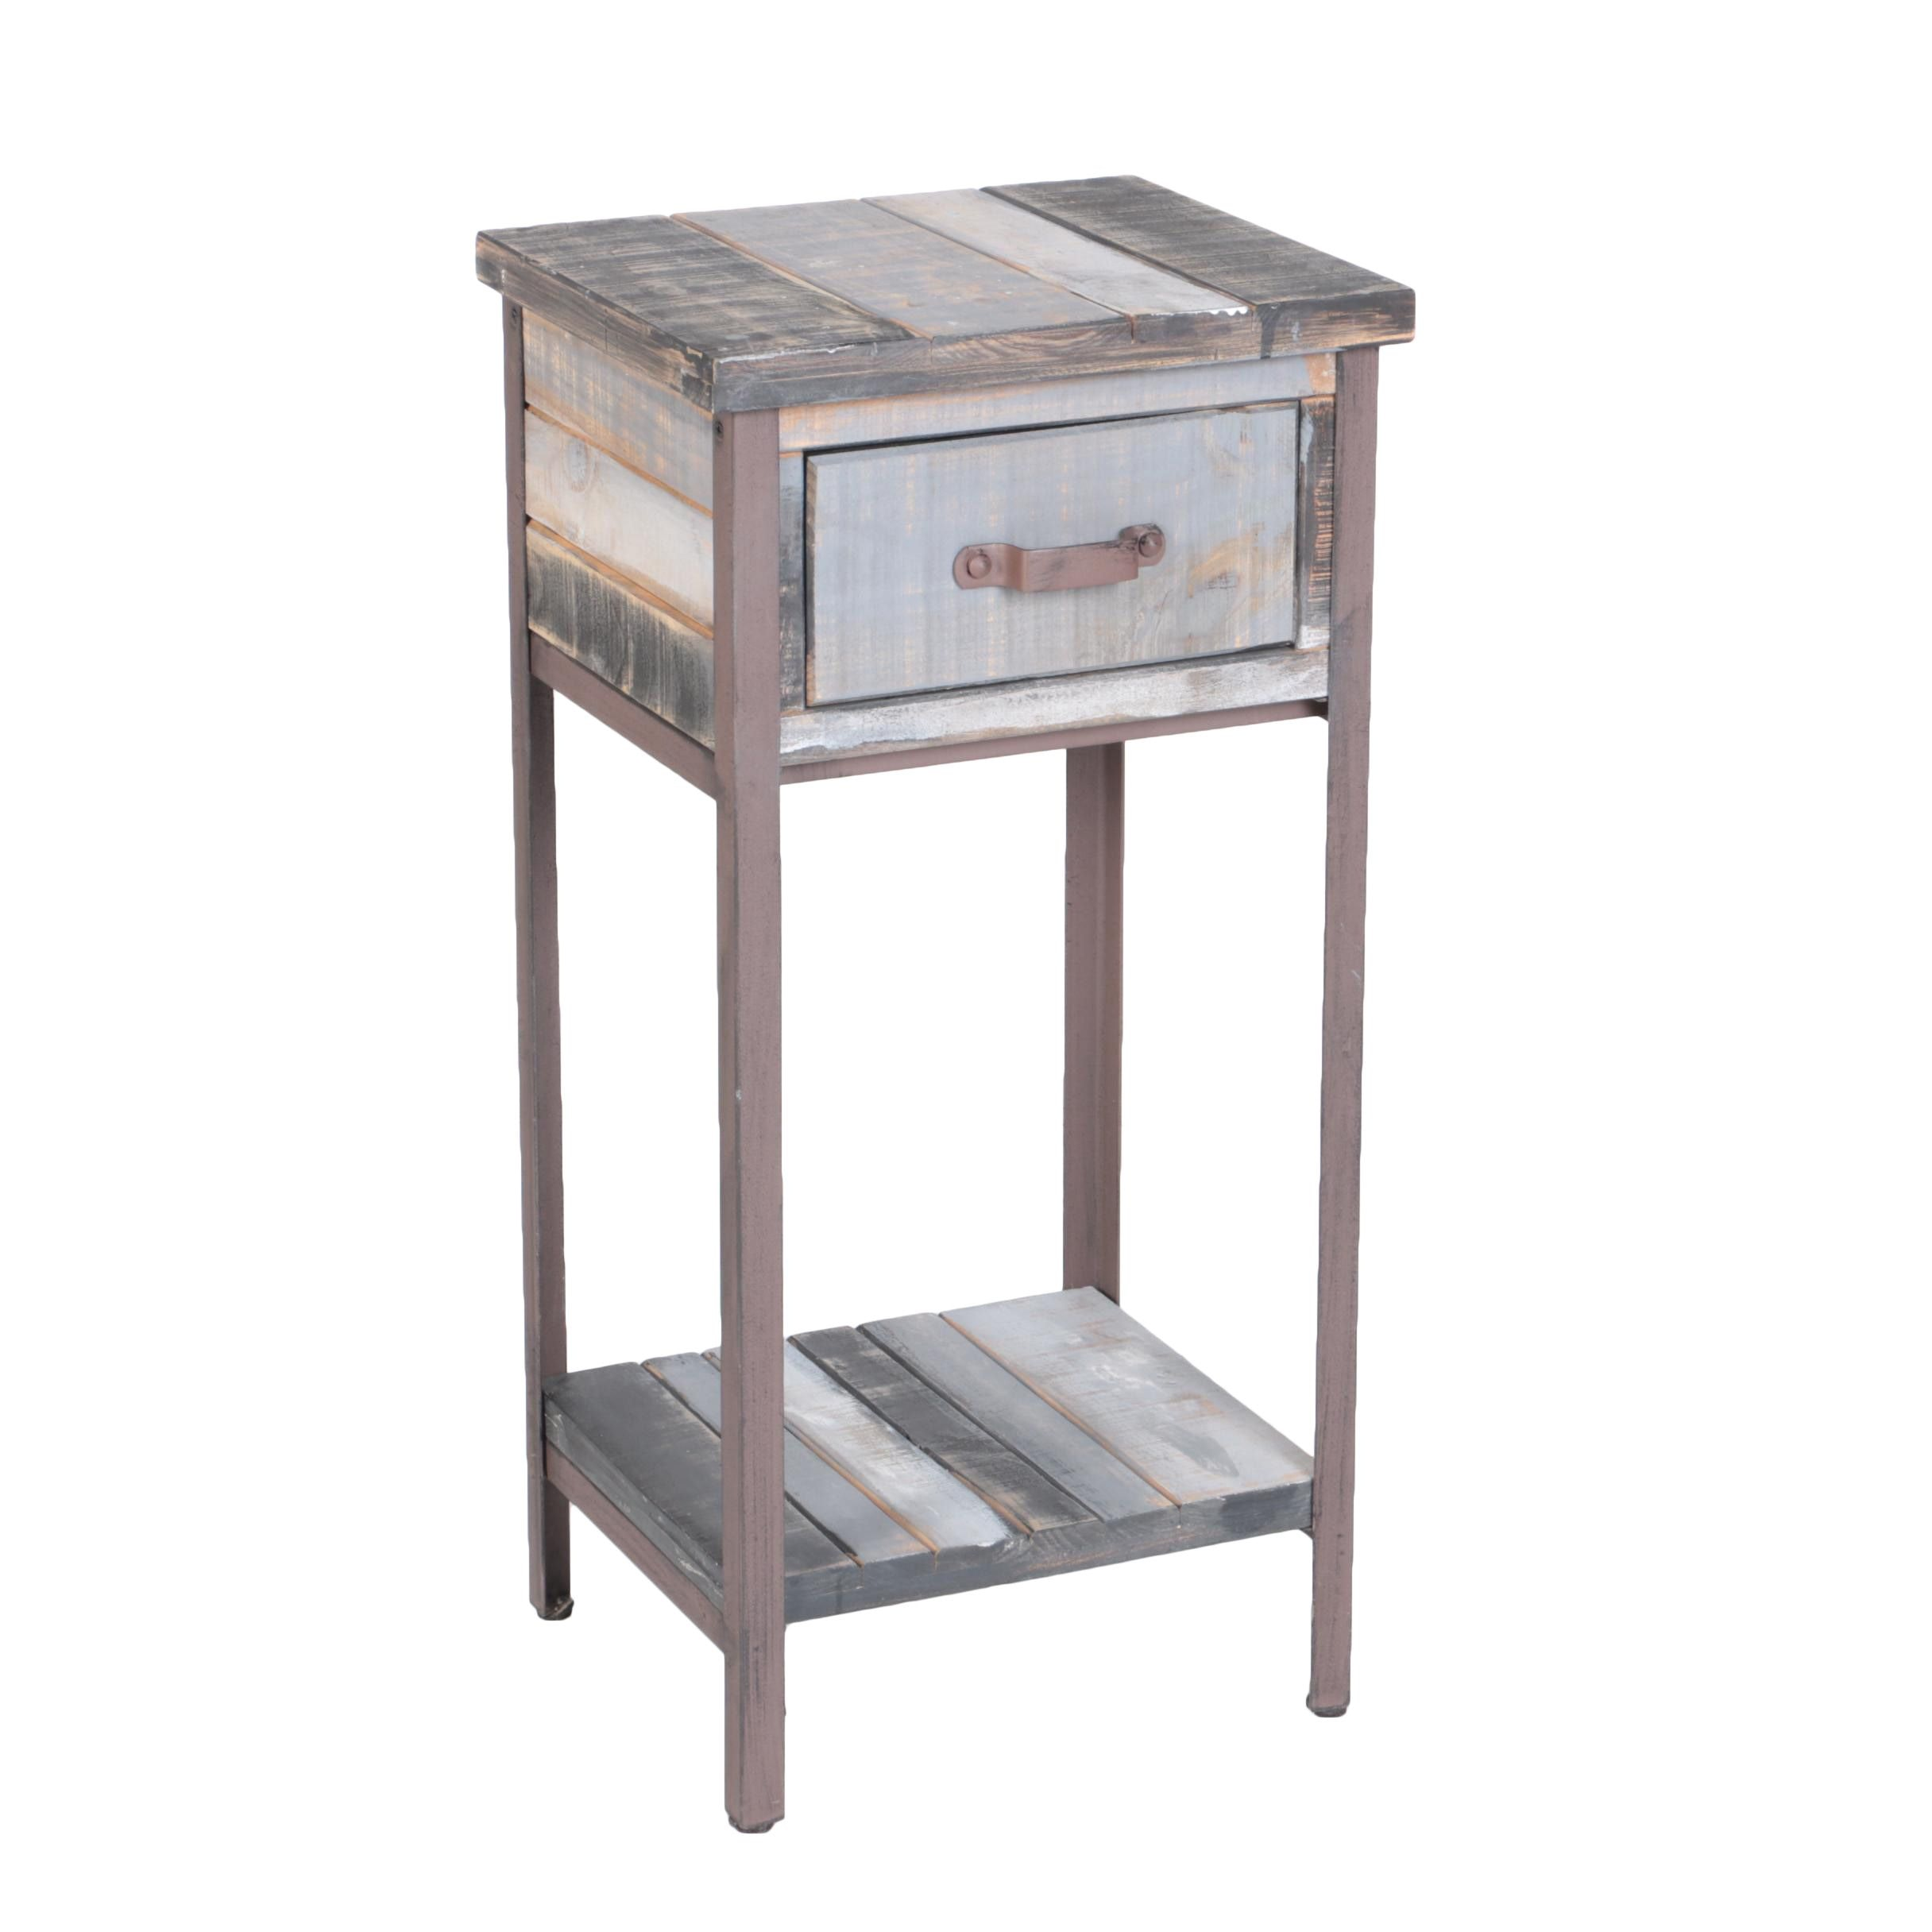 Rustic Style Reclaimed Wood Accent Table